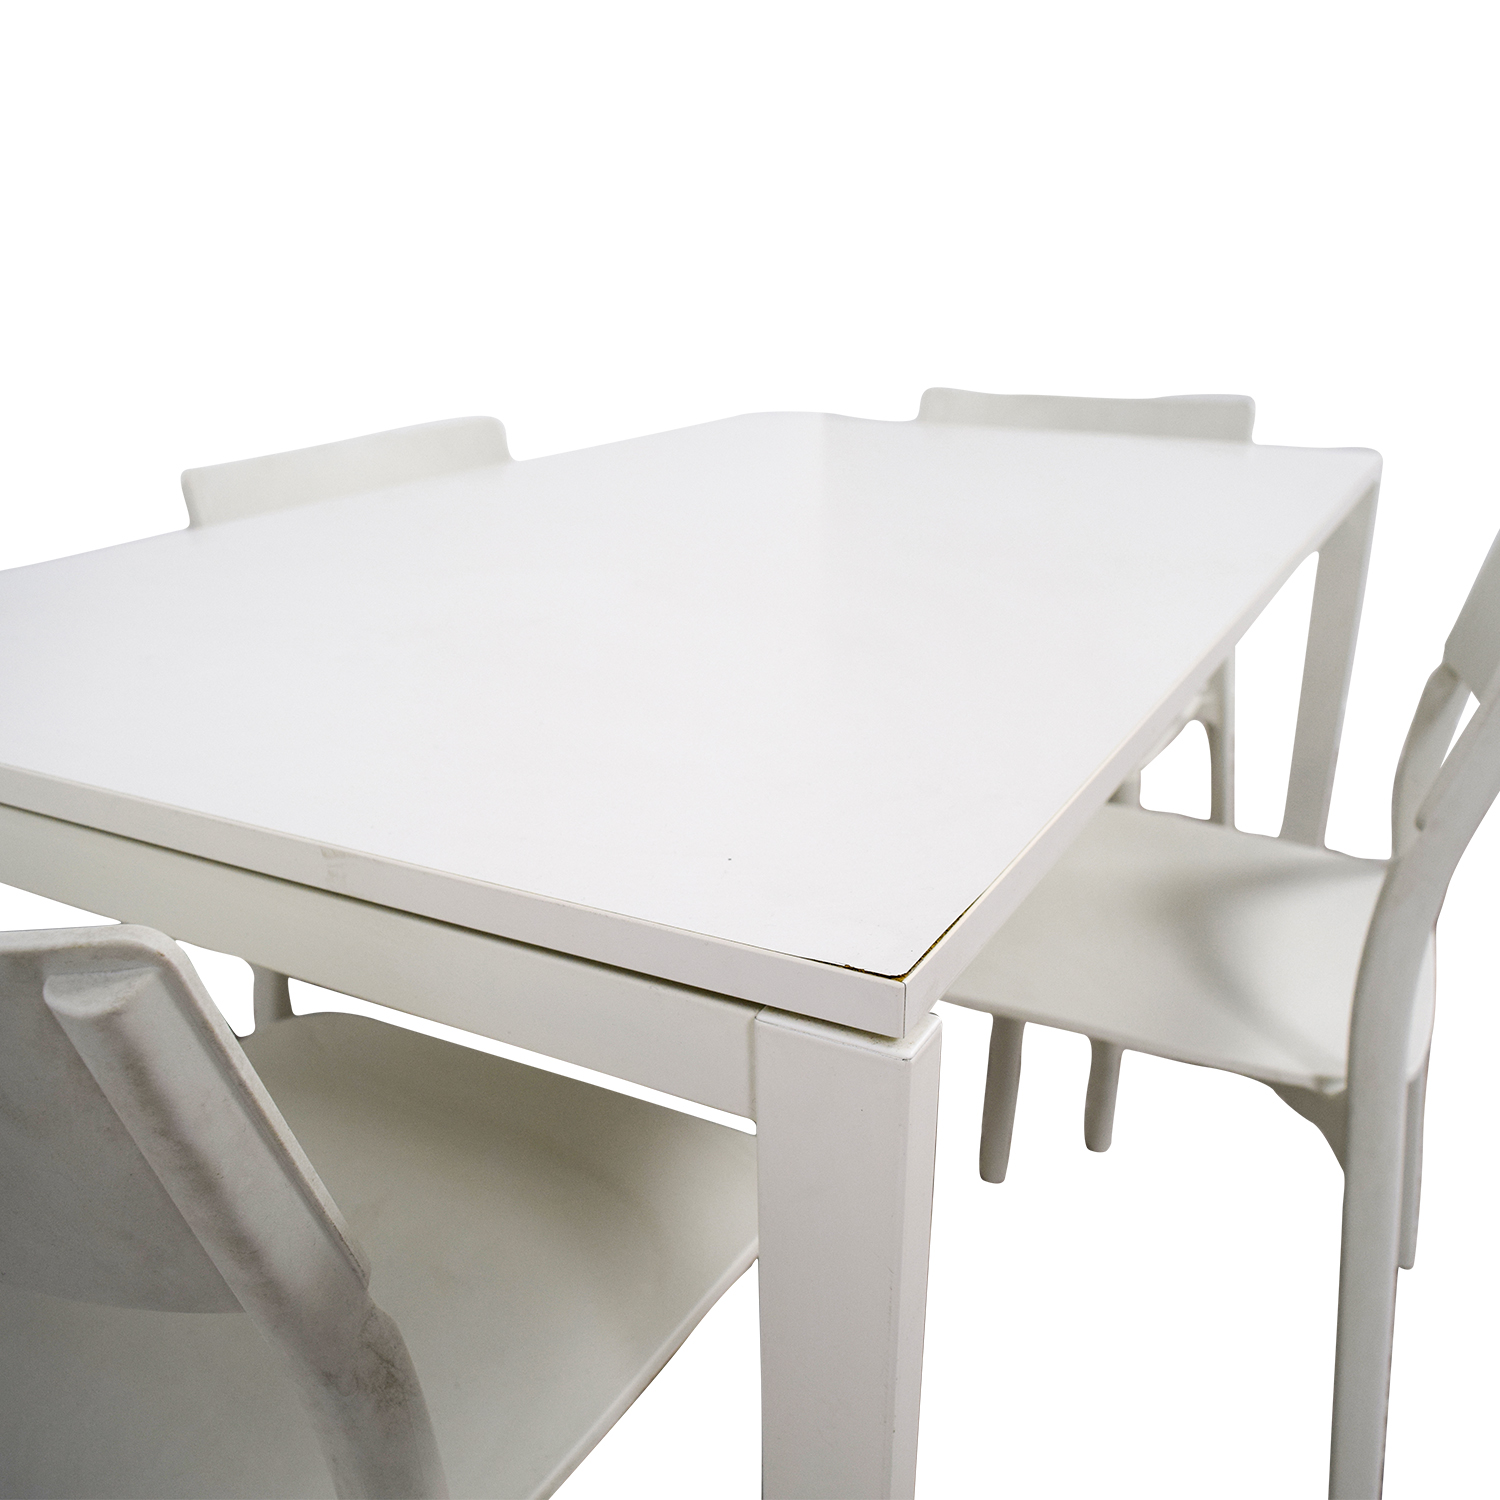 Prime 65 Off Ikea Ikea White Kitchen Table And Chairs Tables Ocoug Best Dining Table And Chair Ideas Images Ocougorg